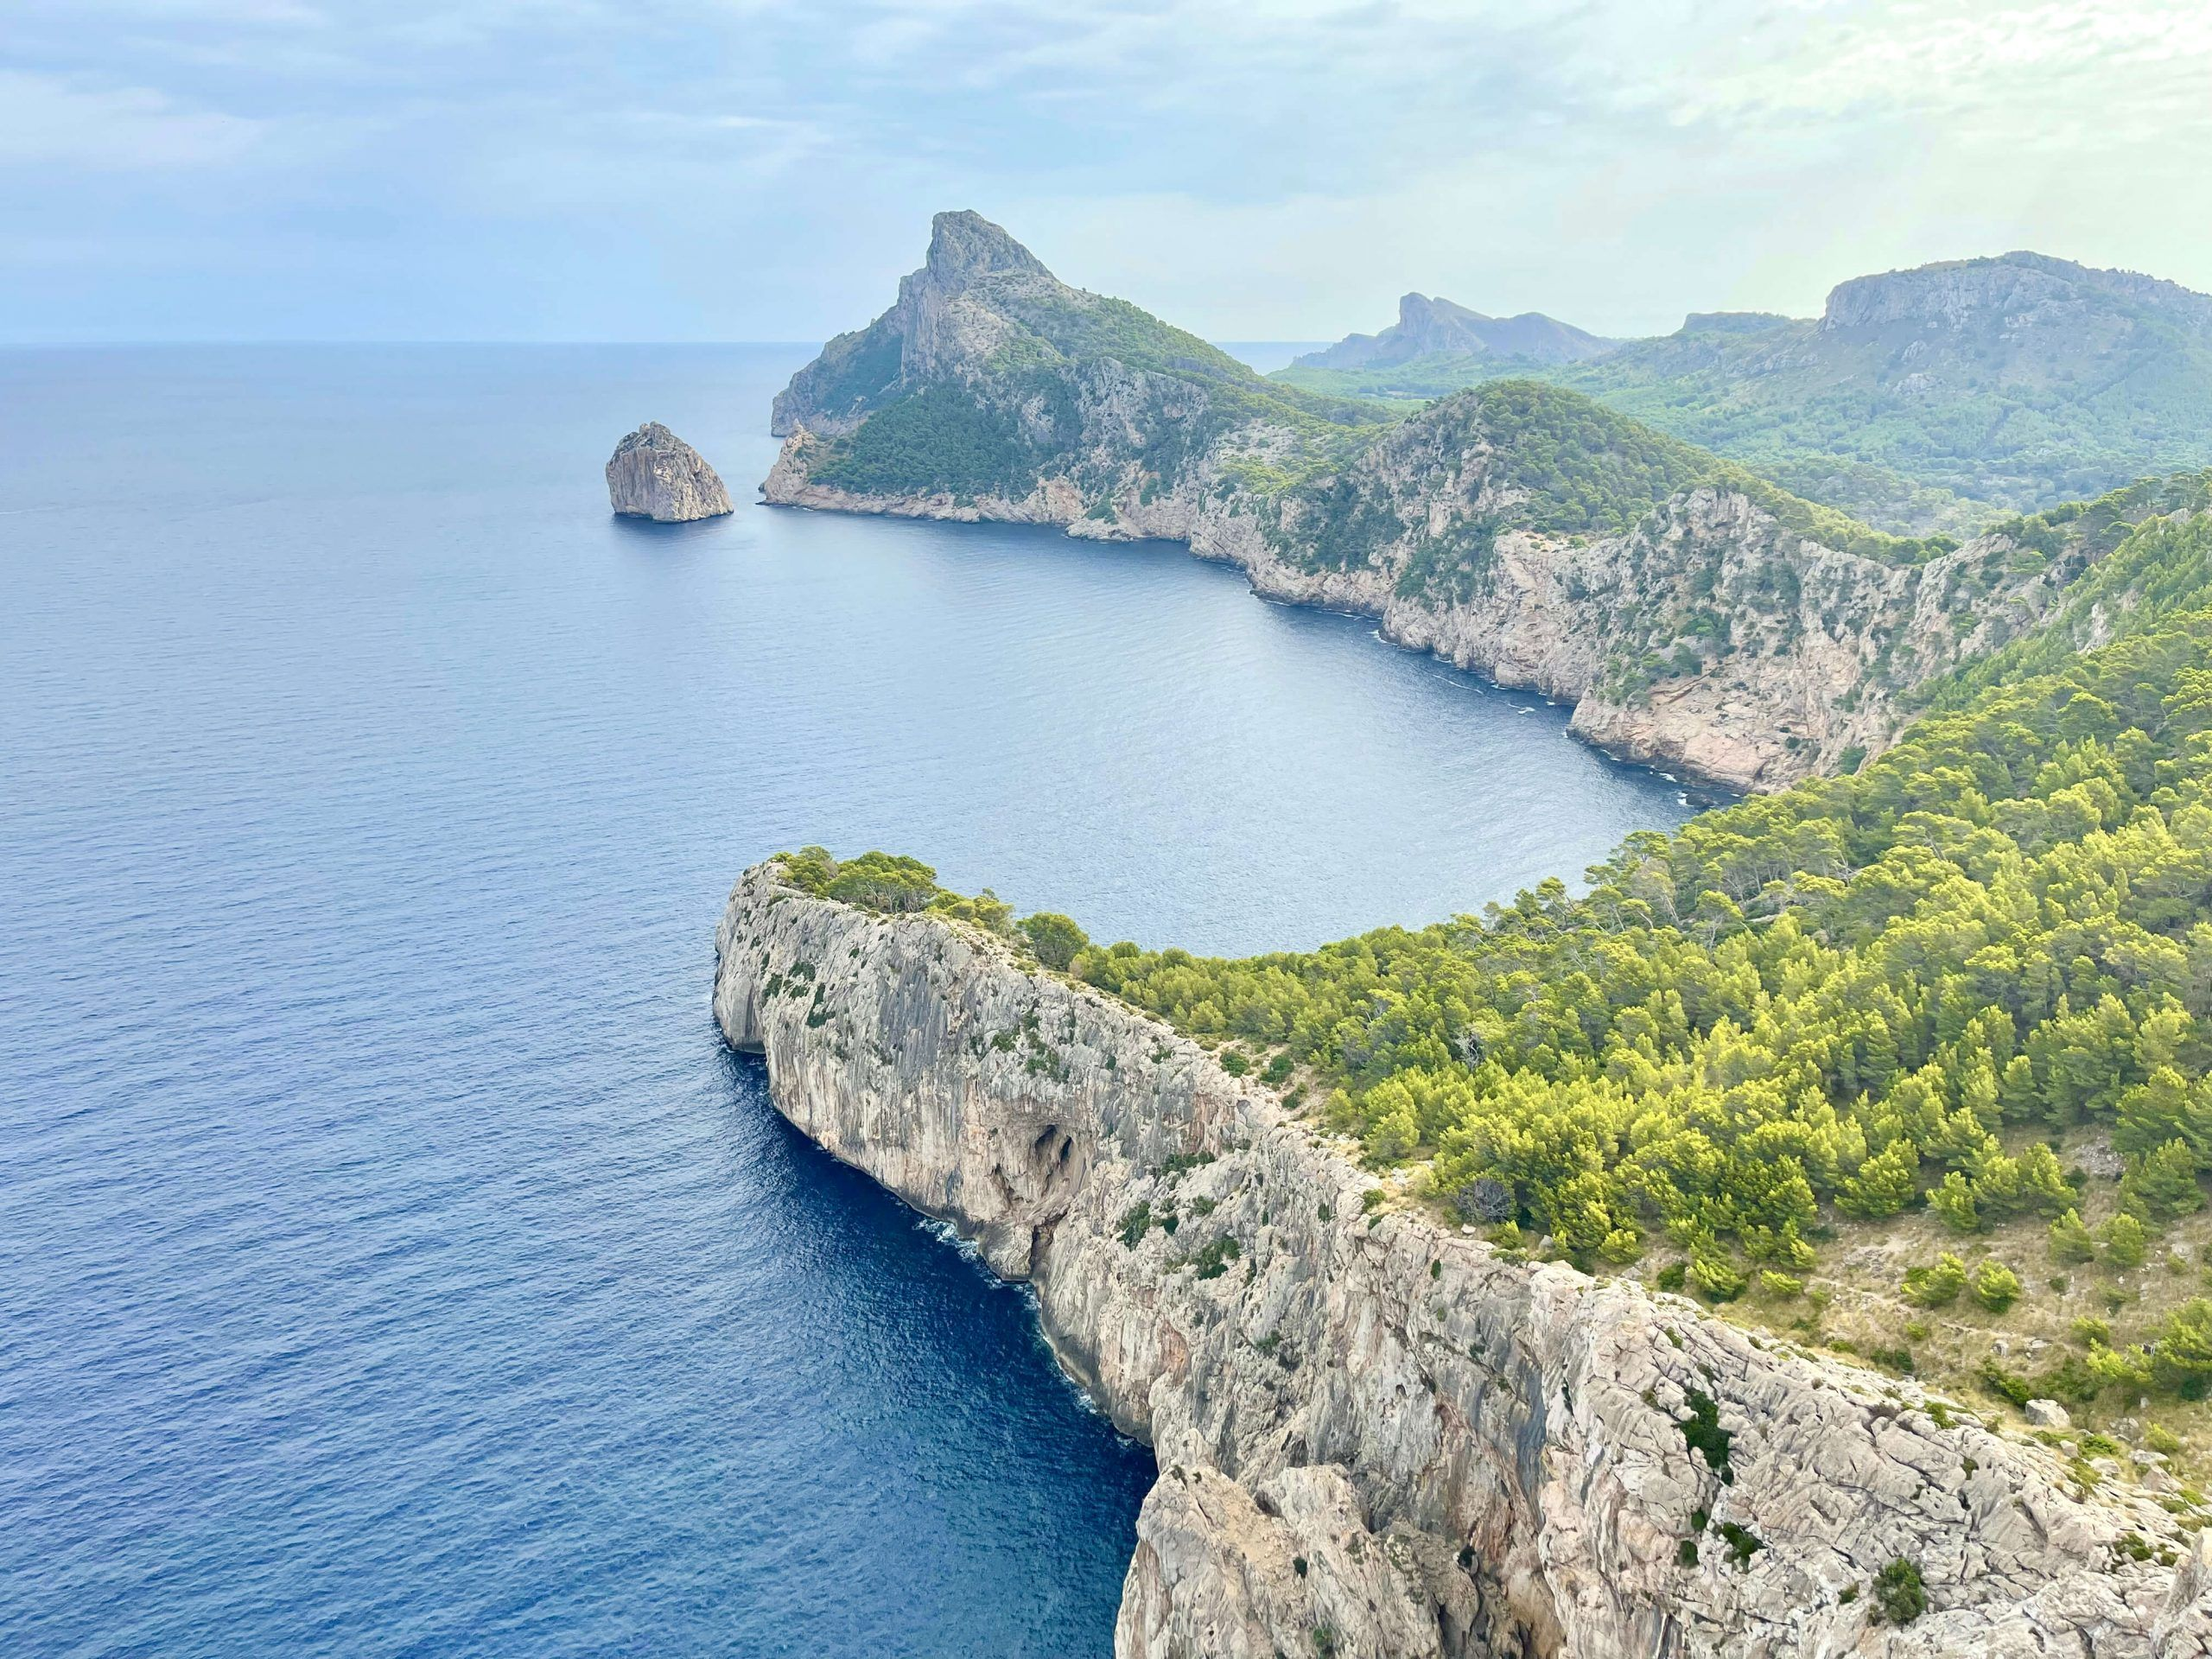 Overlook of cliffs and coves in Mallorca